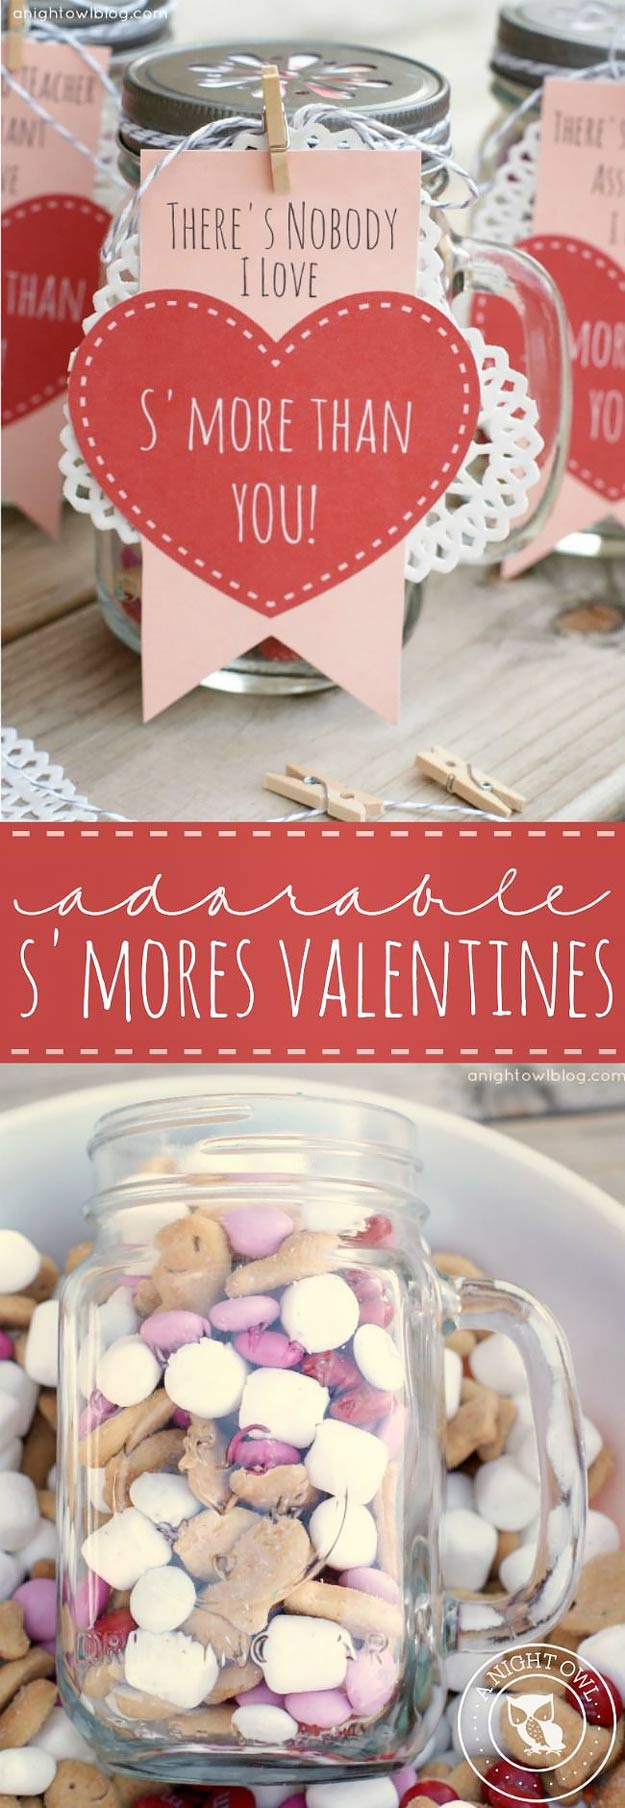 Mason Jar Valentine Gifts and Crafts | DIY Ideas for Valentines Day for Cute Gift Giving and Decor | S'mores Valentines | http://diyjoy.com/mason-jar-valentine-crafts